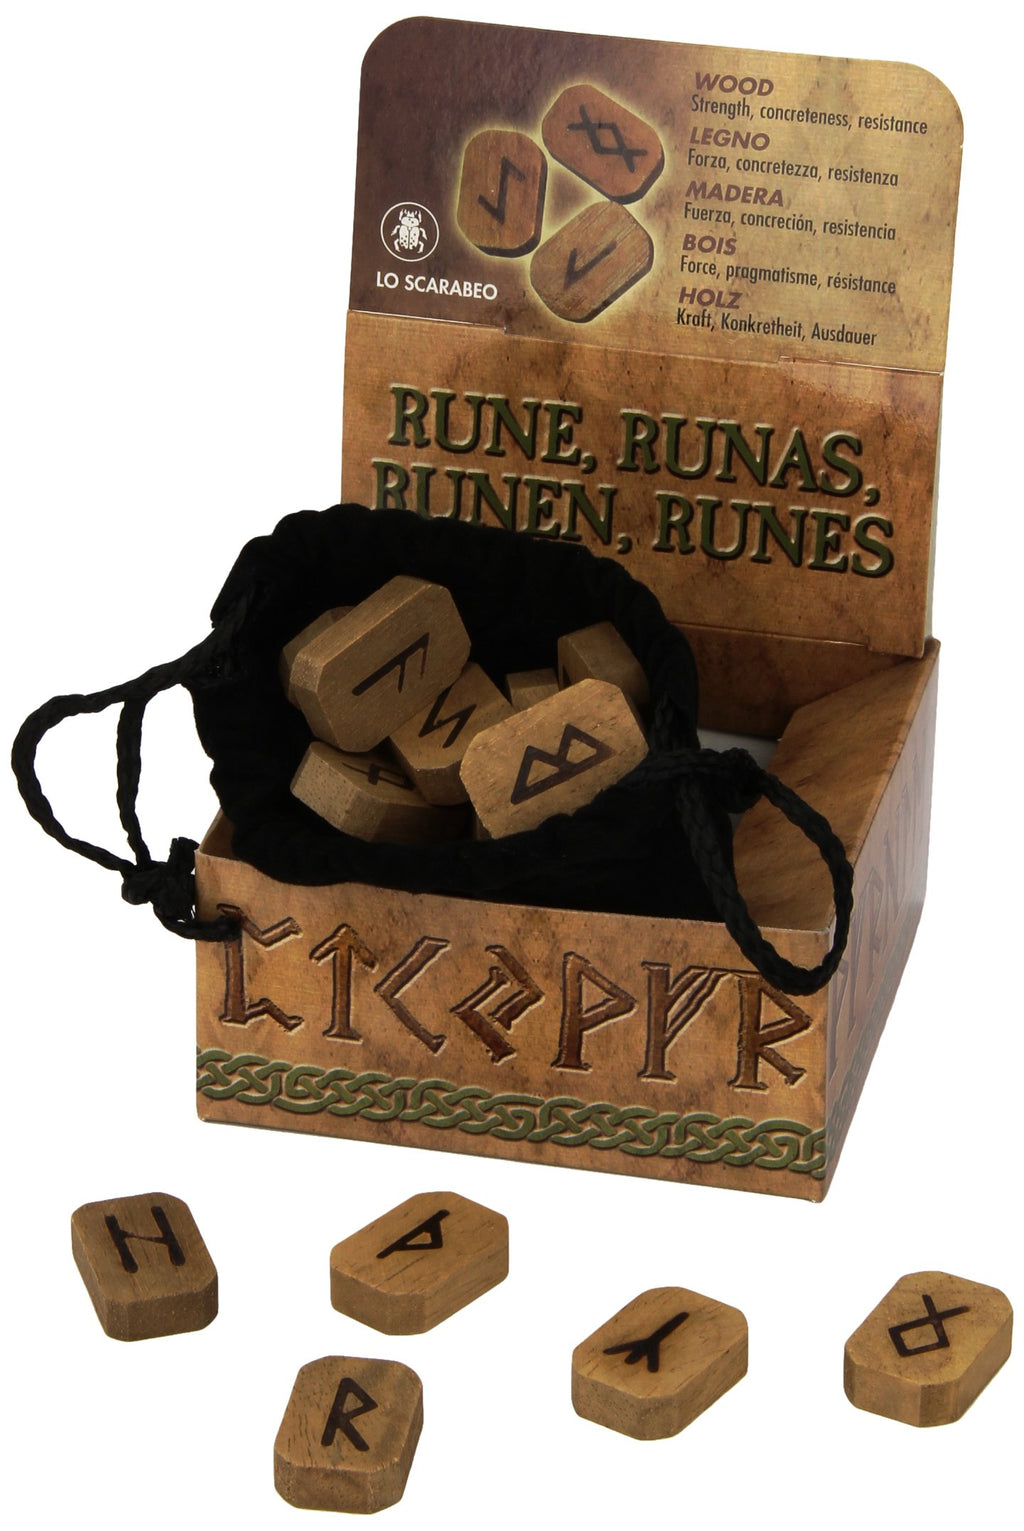 Wooden Runes by Lo Scarabeo